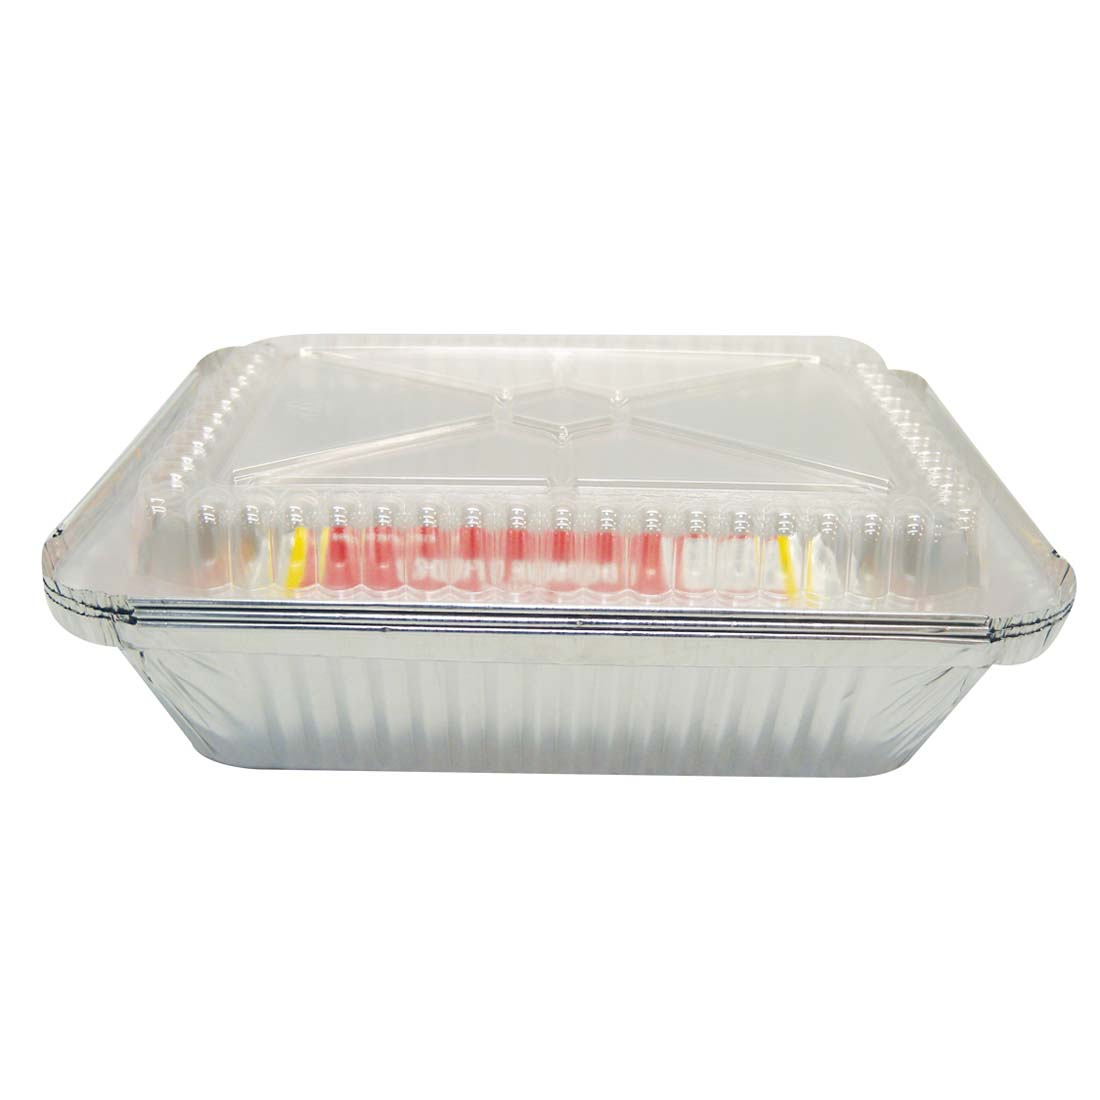 View FOIL PAN 3 PACK 8.75 X 6 X 2.25 INCH WITH DOME LIDS